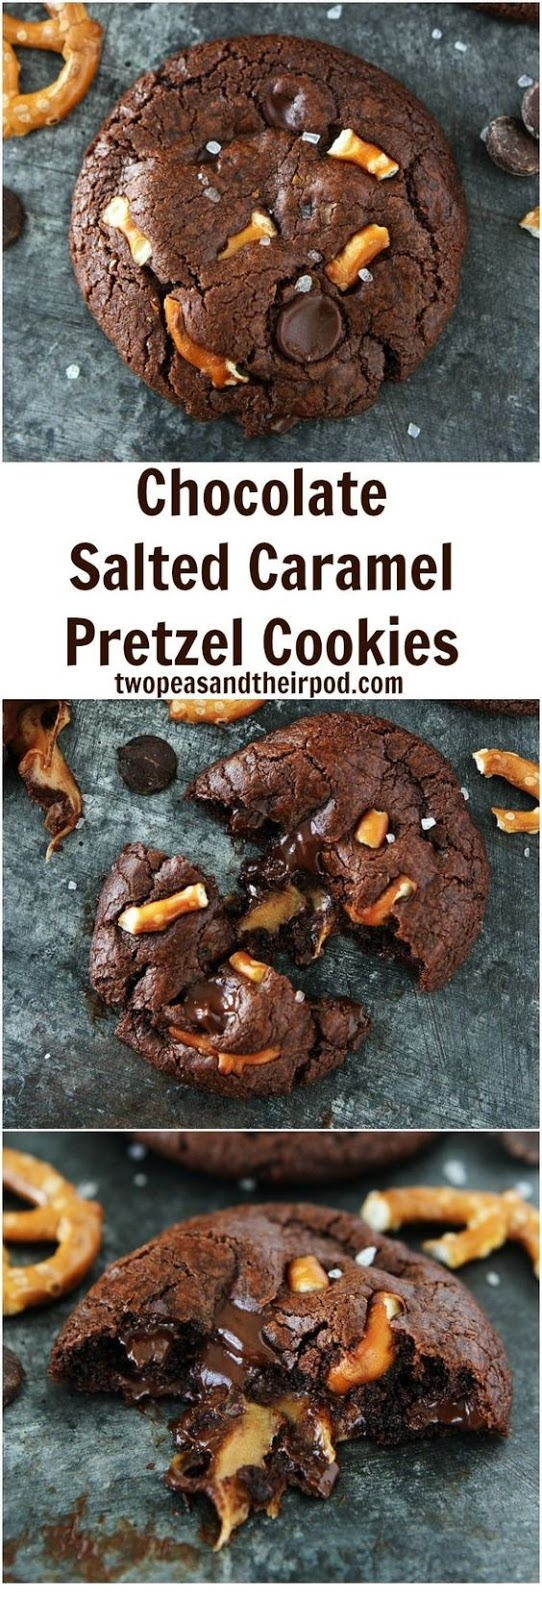 Chocolate Salted Caramel Pretzel Cookies